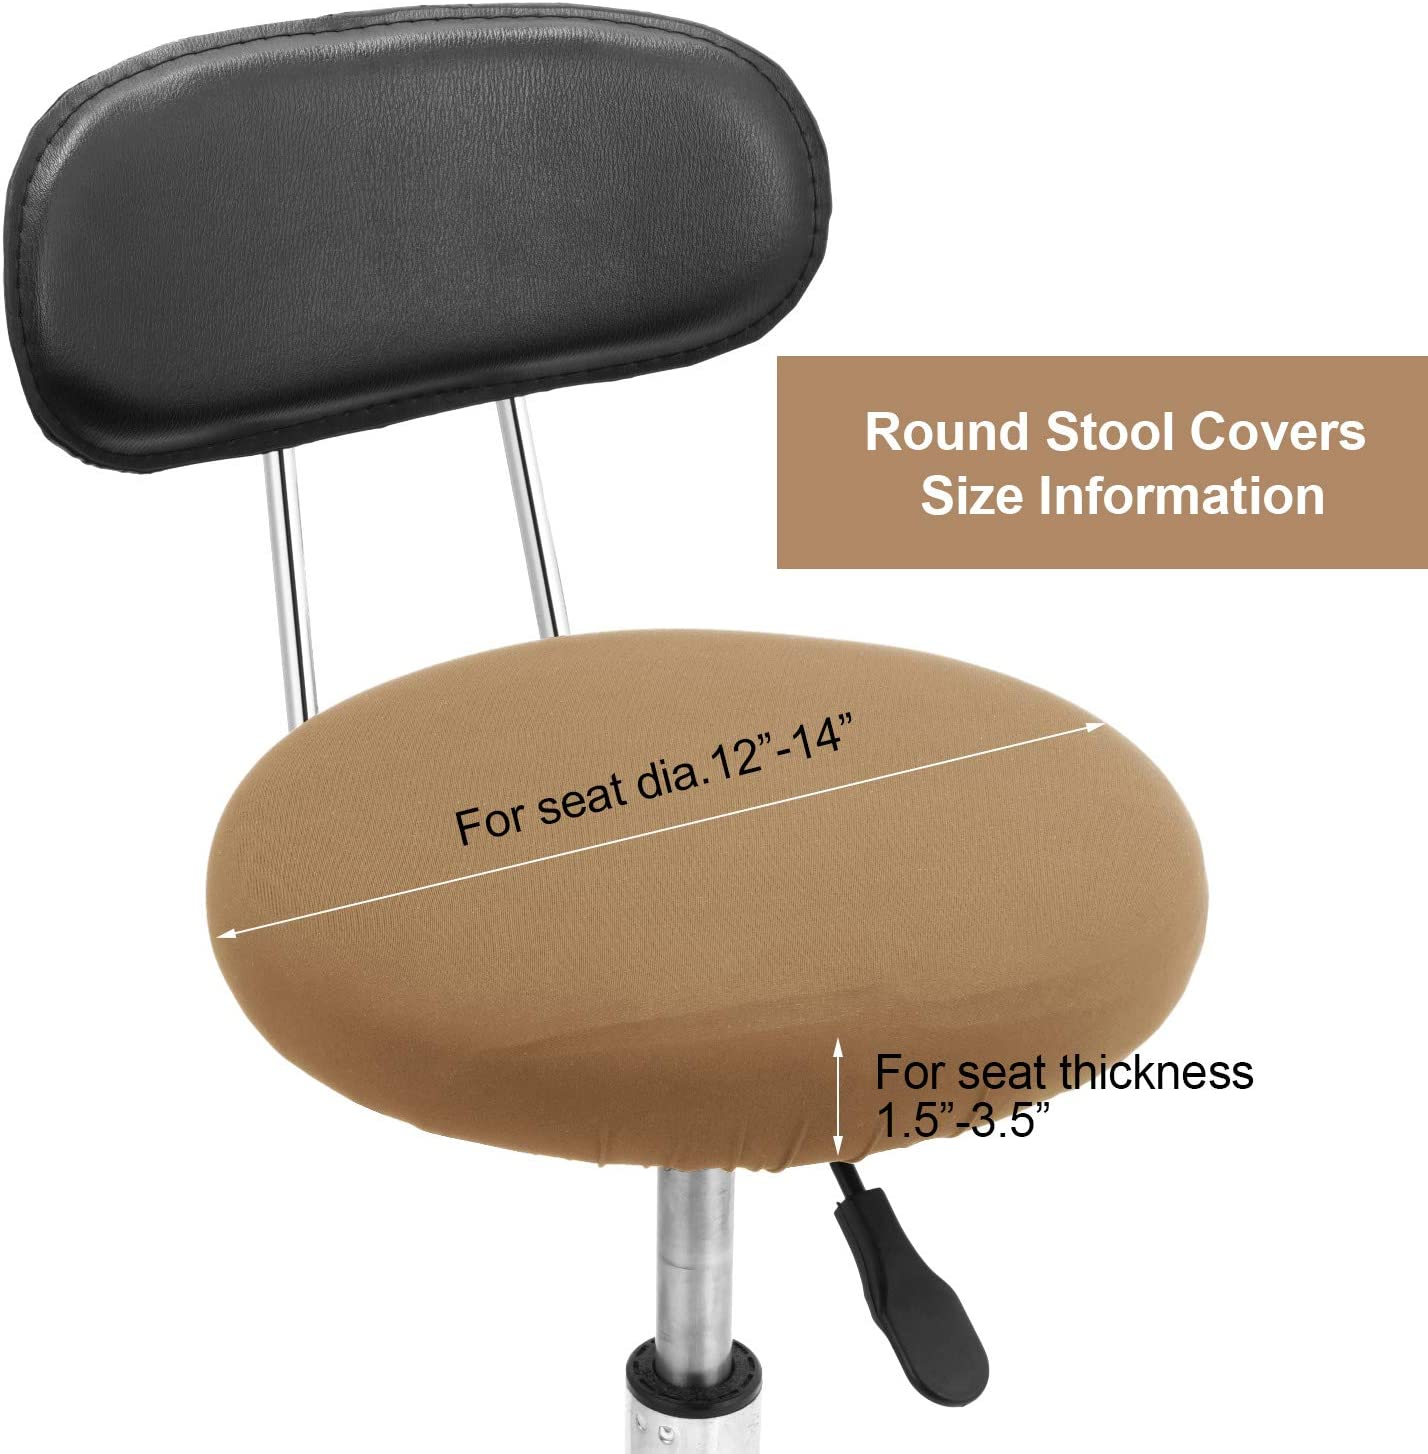 Light Tan 12-14 Inch Boao 4 Pieces Round Bar Stool Covers Elastic Bar Chair Covers Washable Stool Cushion Slipcover for Home Bar Hotel Use